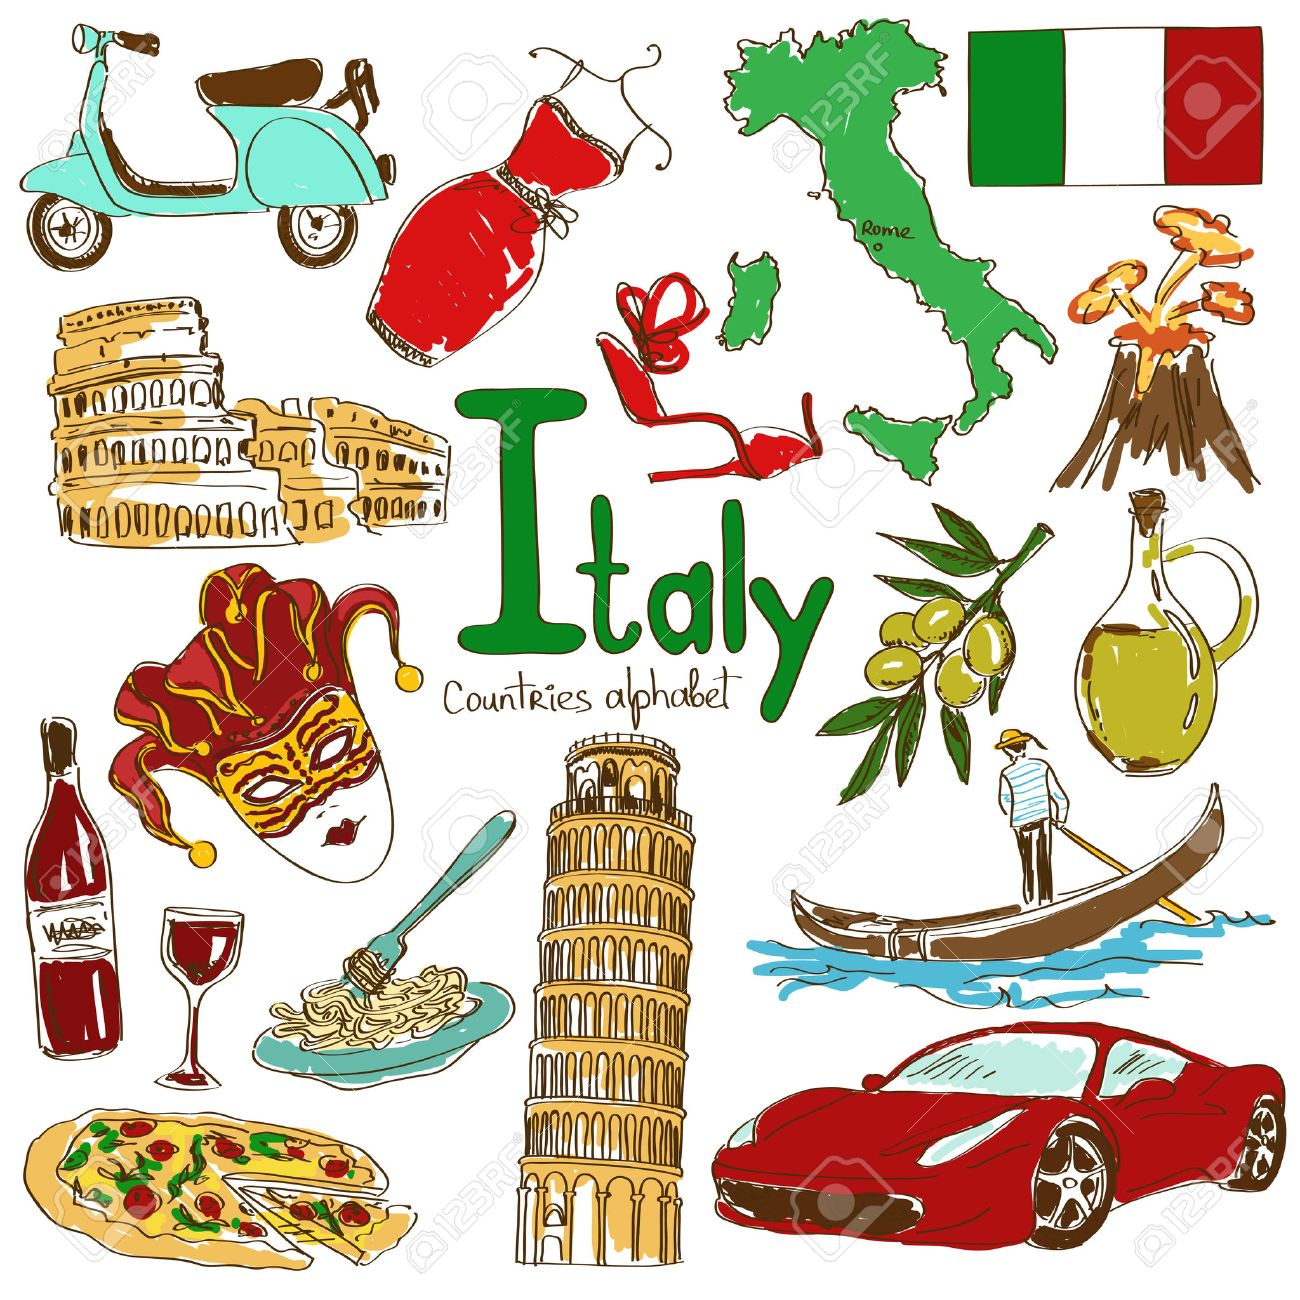 hight resolution of fun colorful sketch collection of italy icons countries alphabet illustration